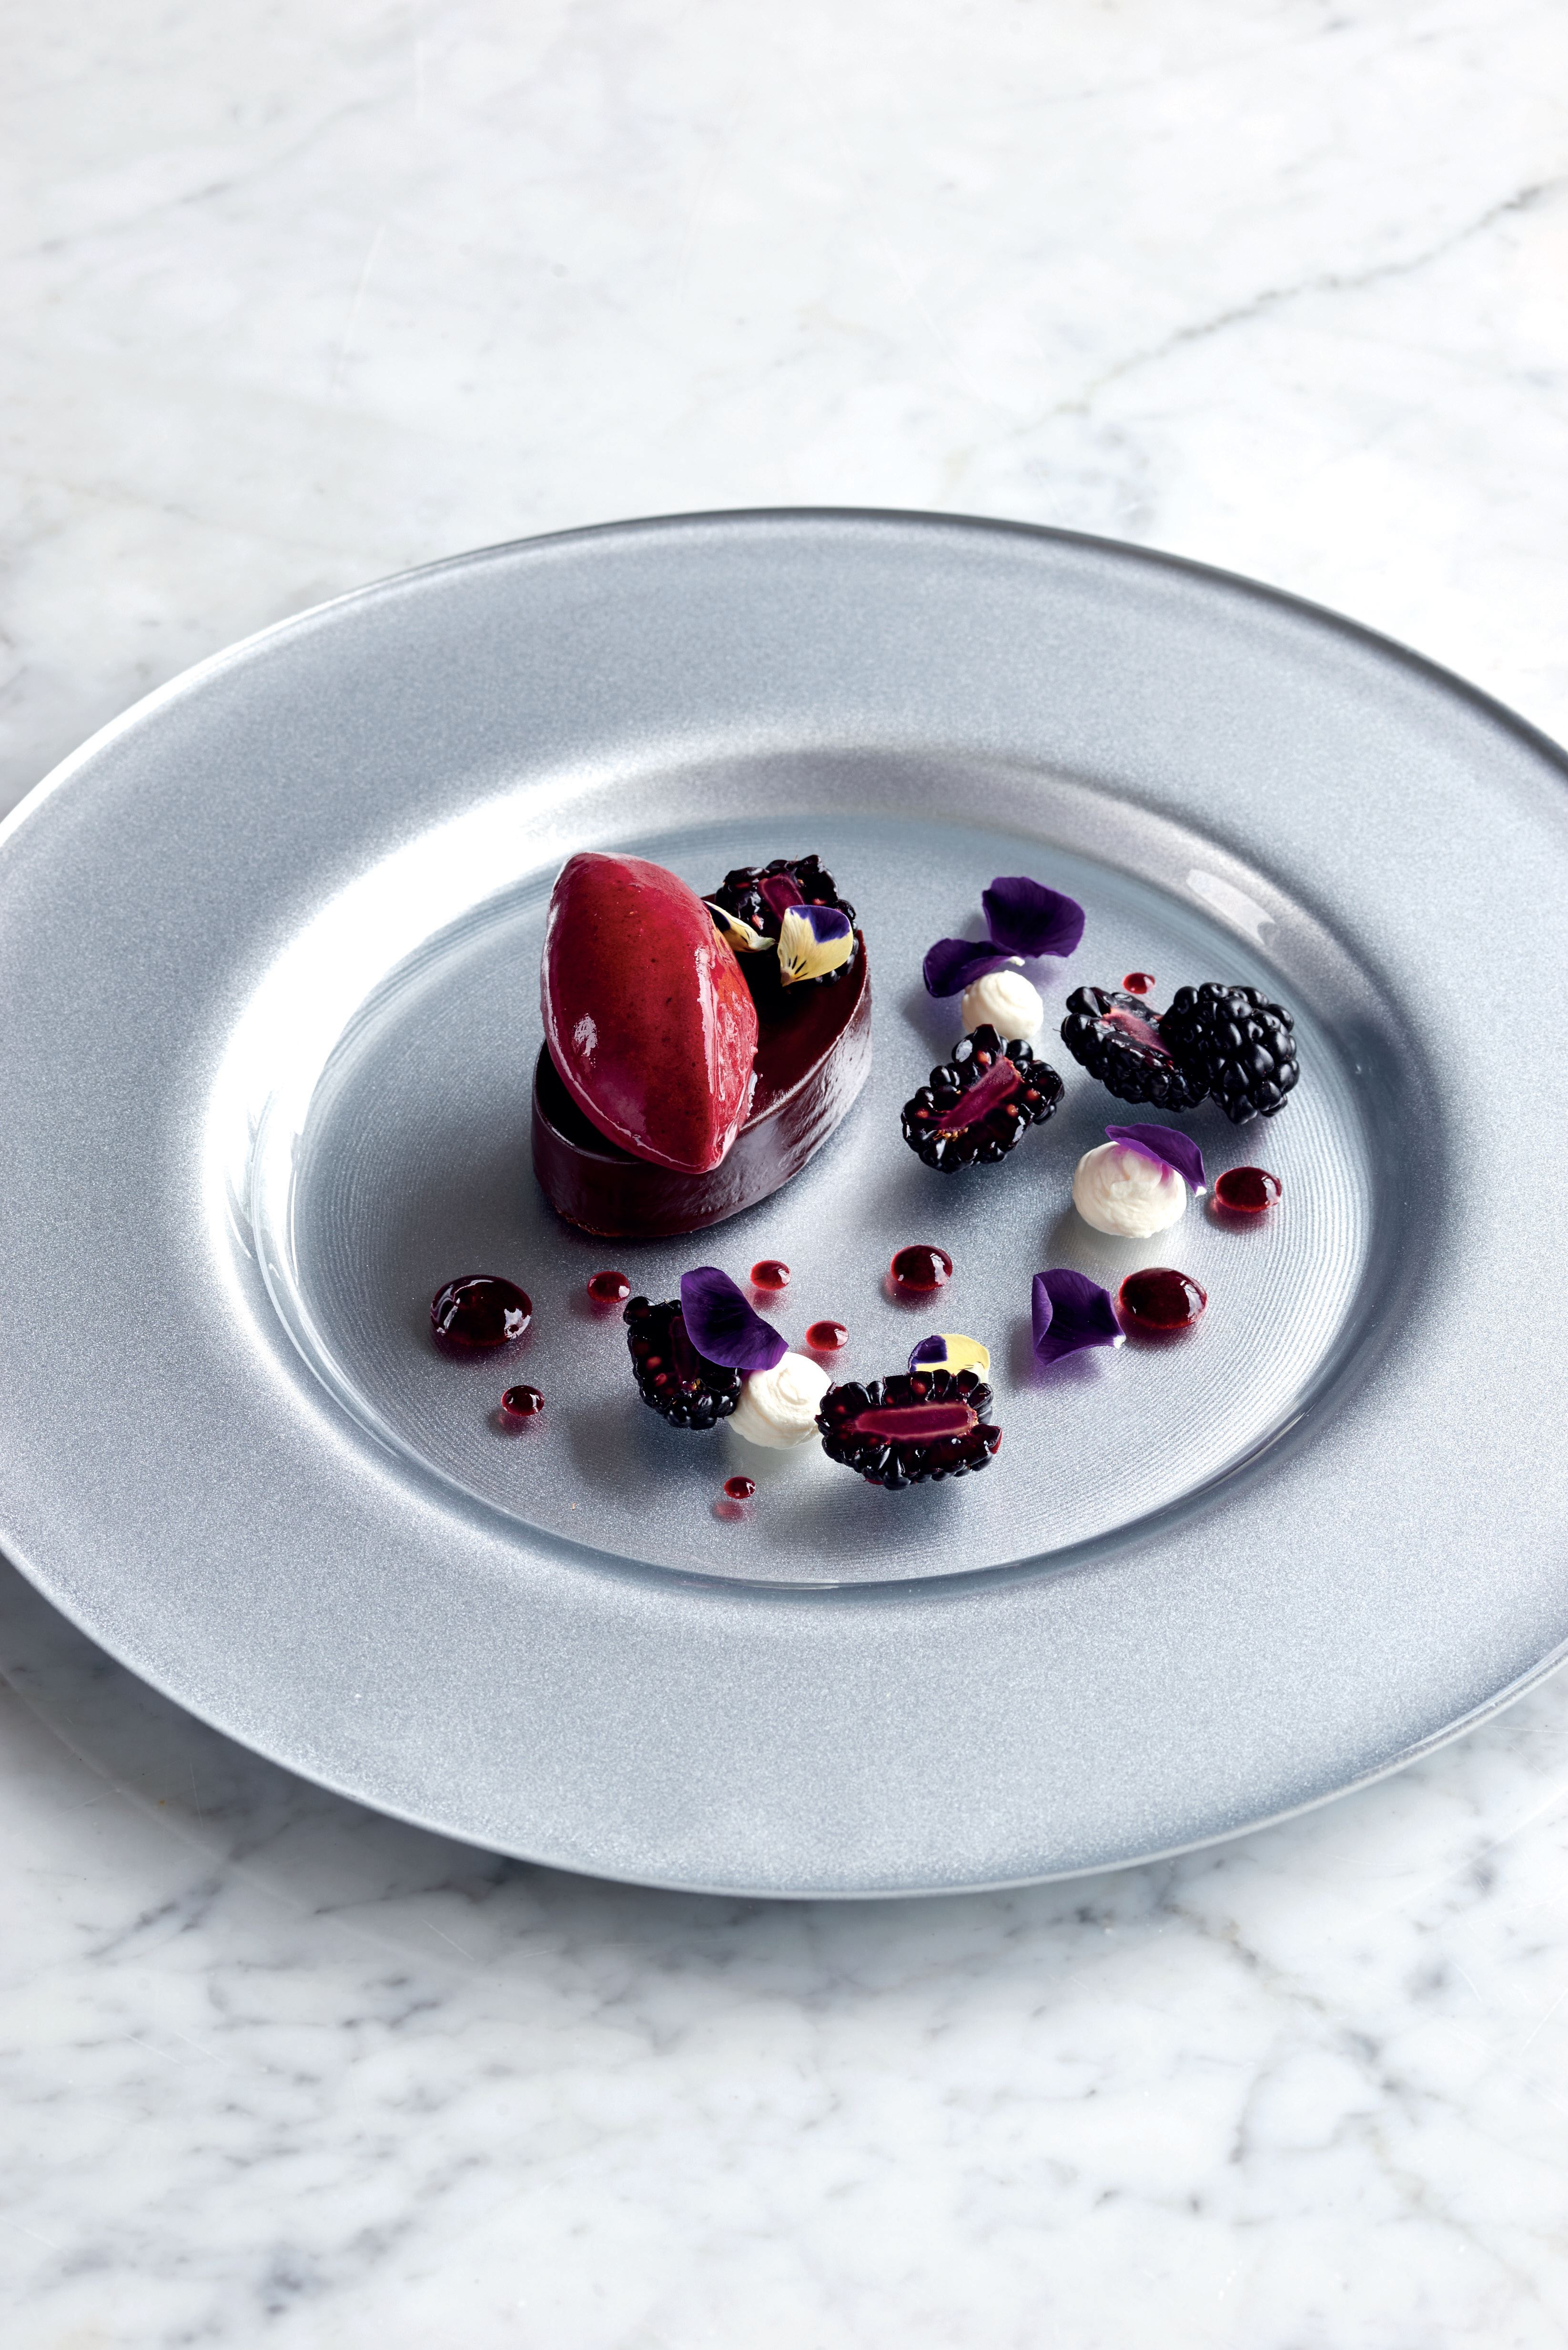 Chocolate ganache with blackberries and blackberry sorbet